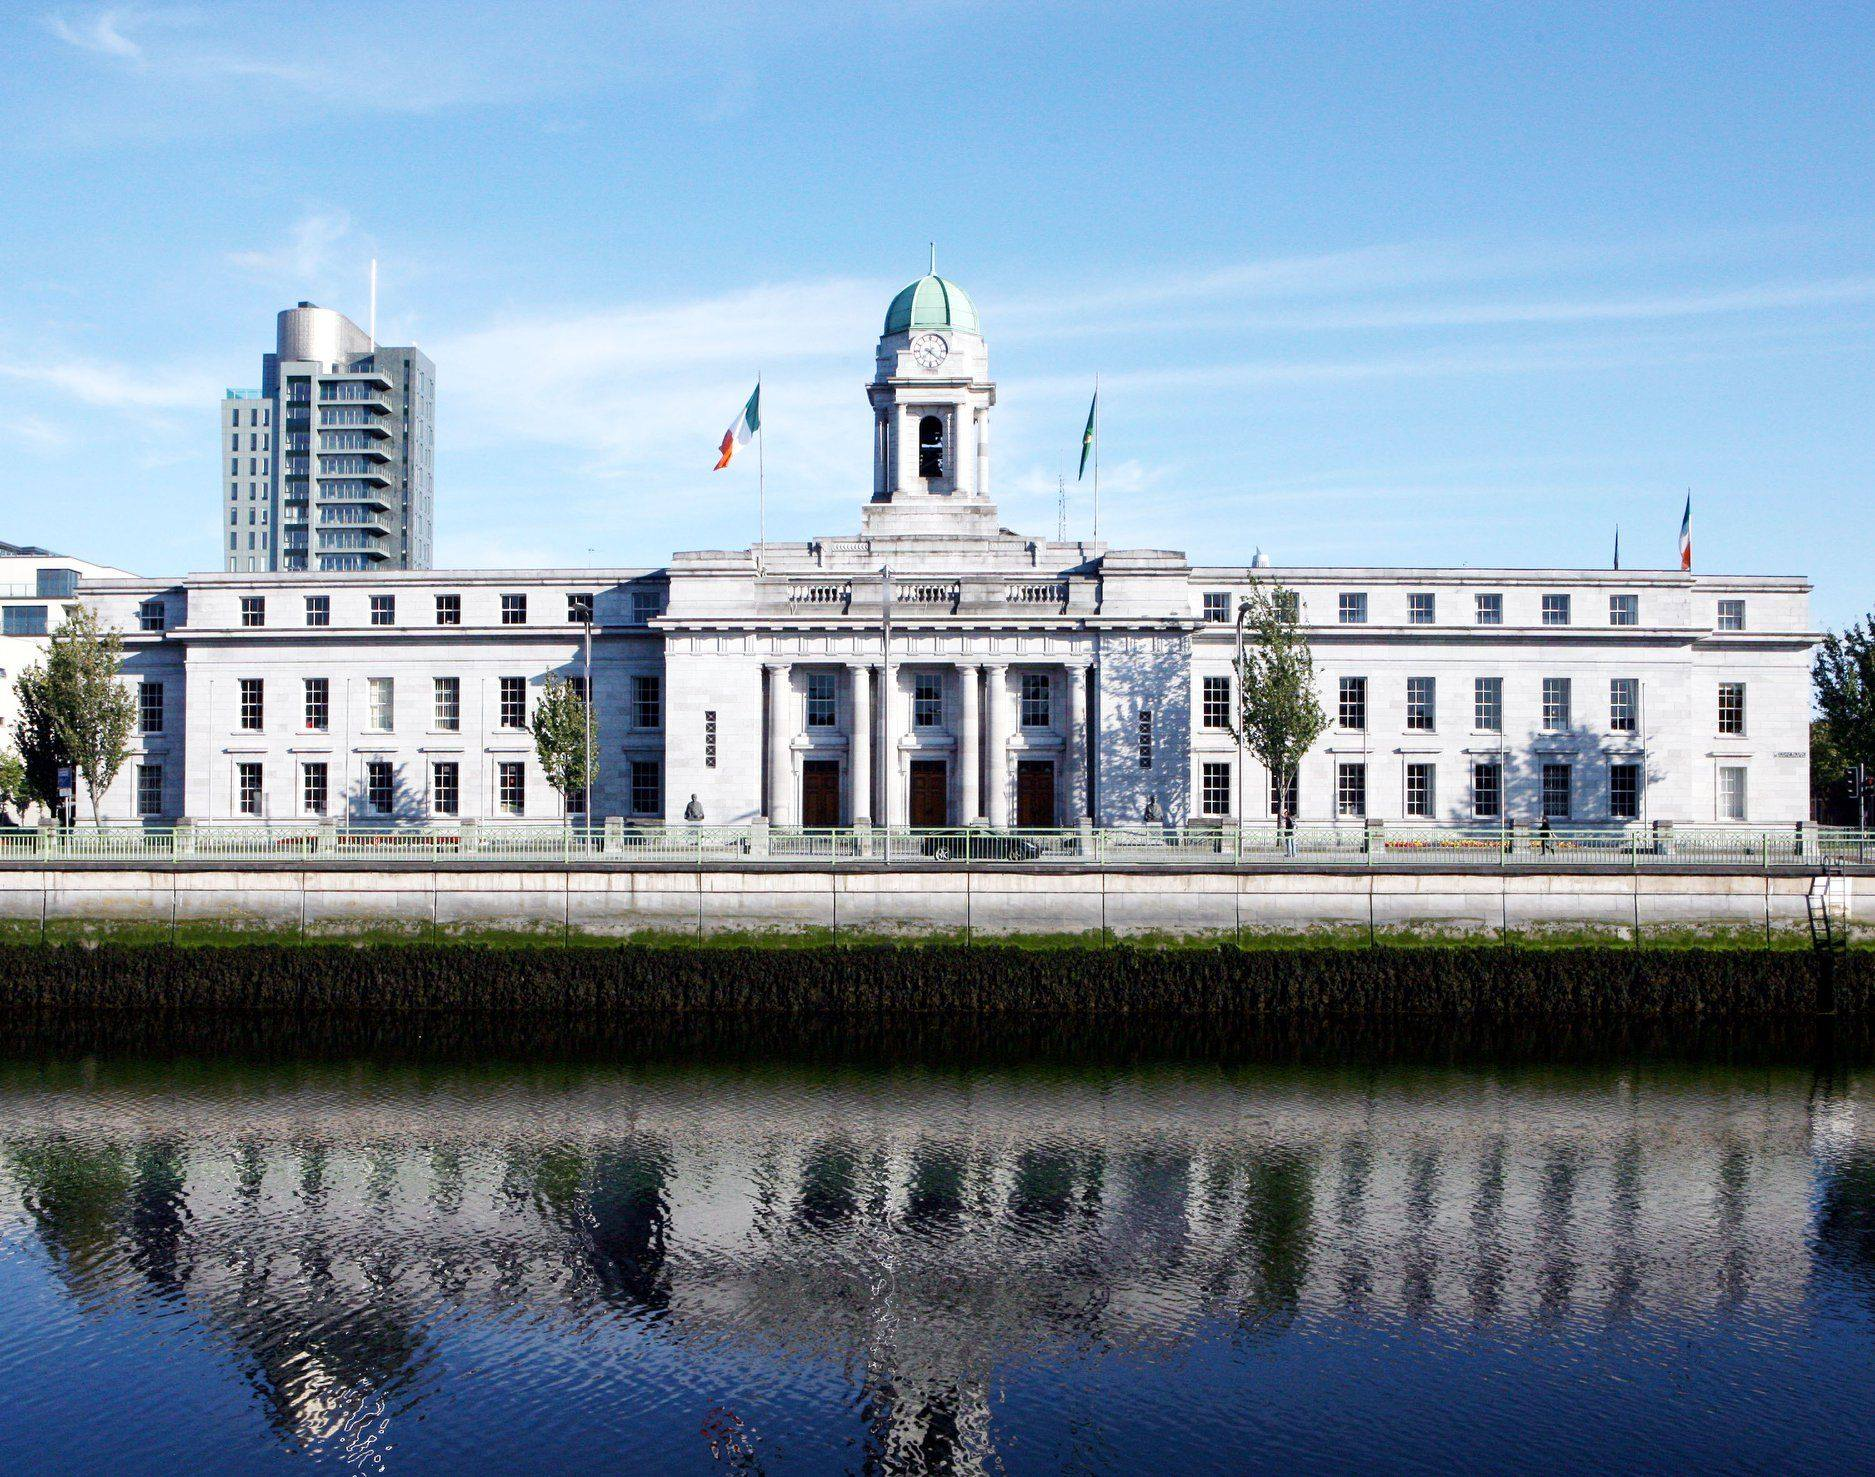 /corkcityco/en/council-services/news-room/latest-news/cityhall_.jpg